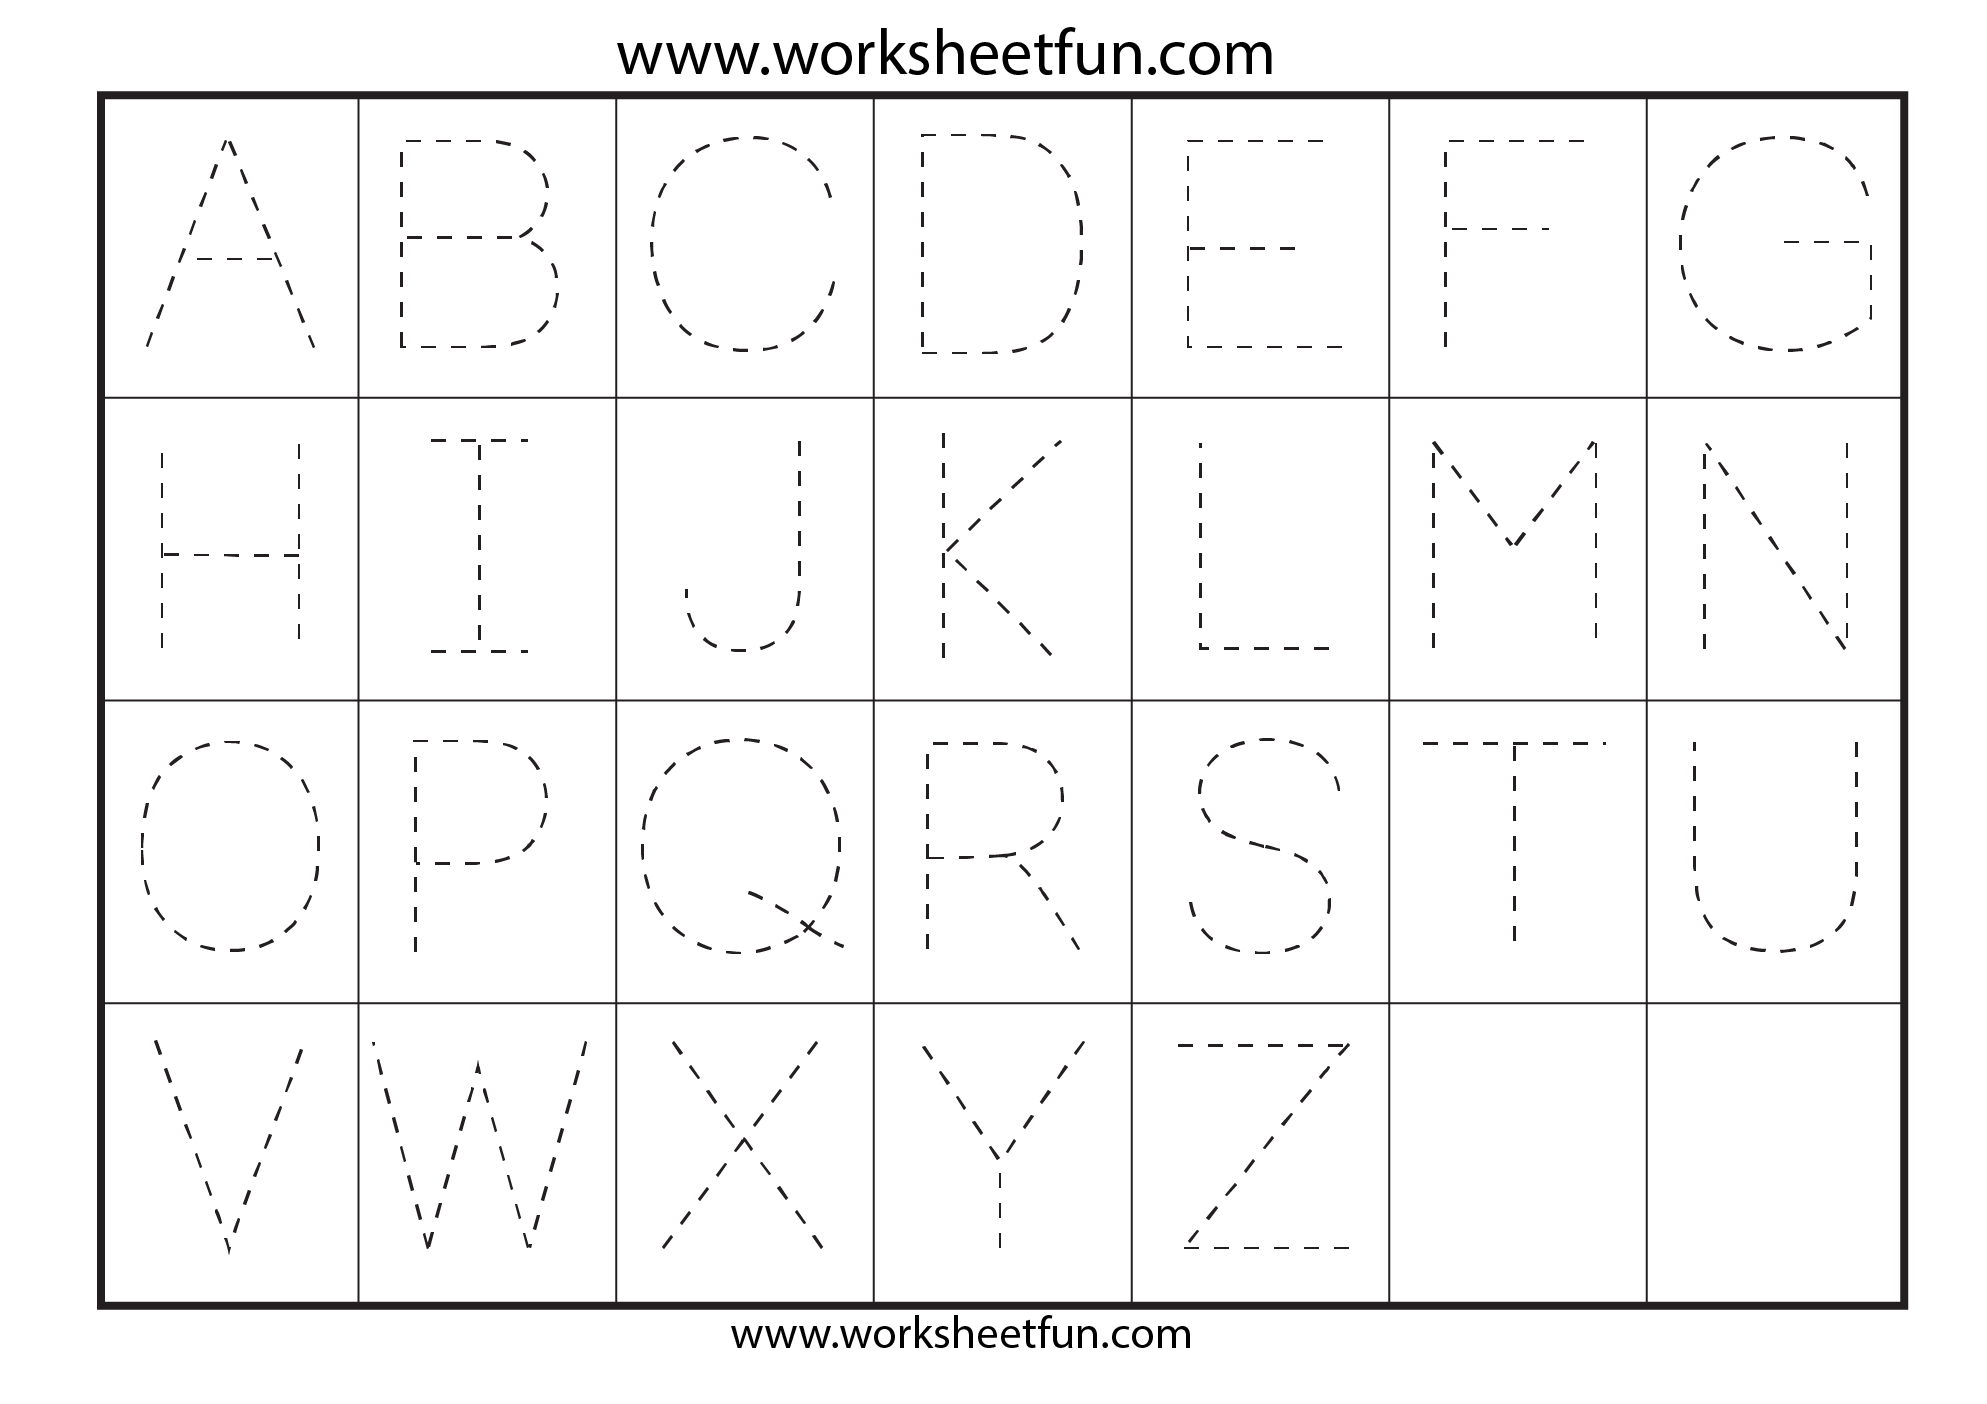 Worksheets Free Alphabet Tracing Worksheets worksheet tracing sheets for alphabet wosenly free 17 images about tot school on pinterest printable letters count